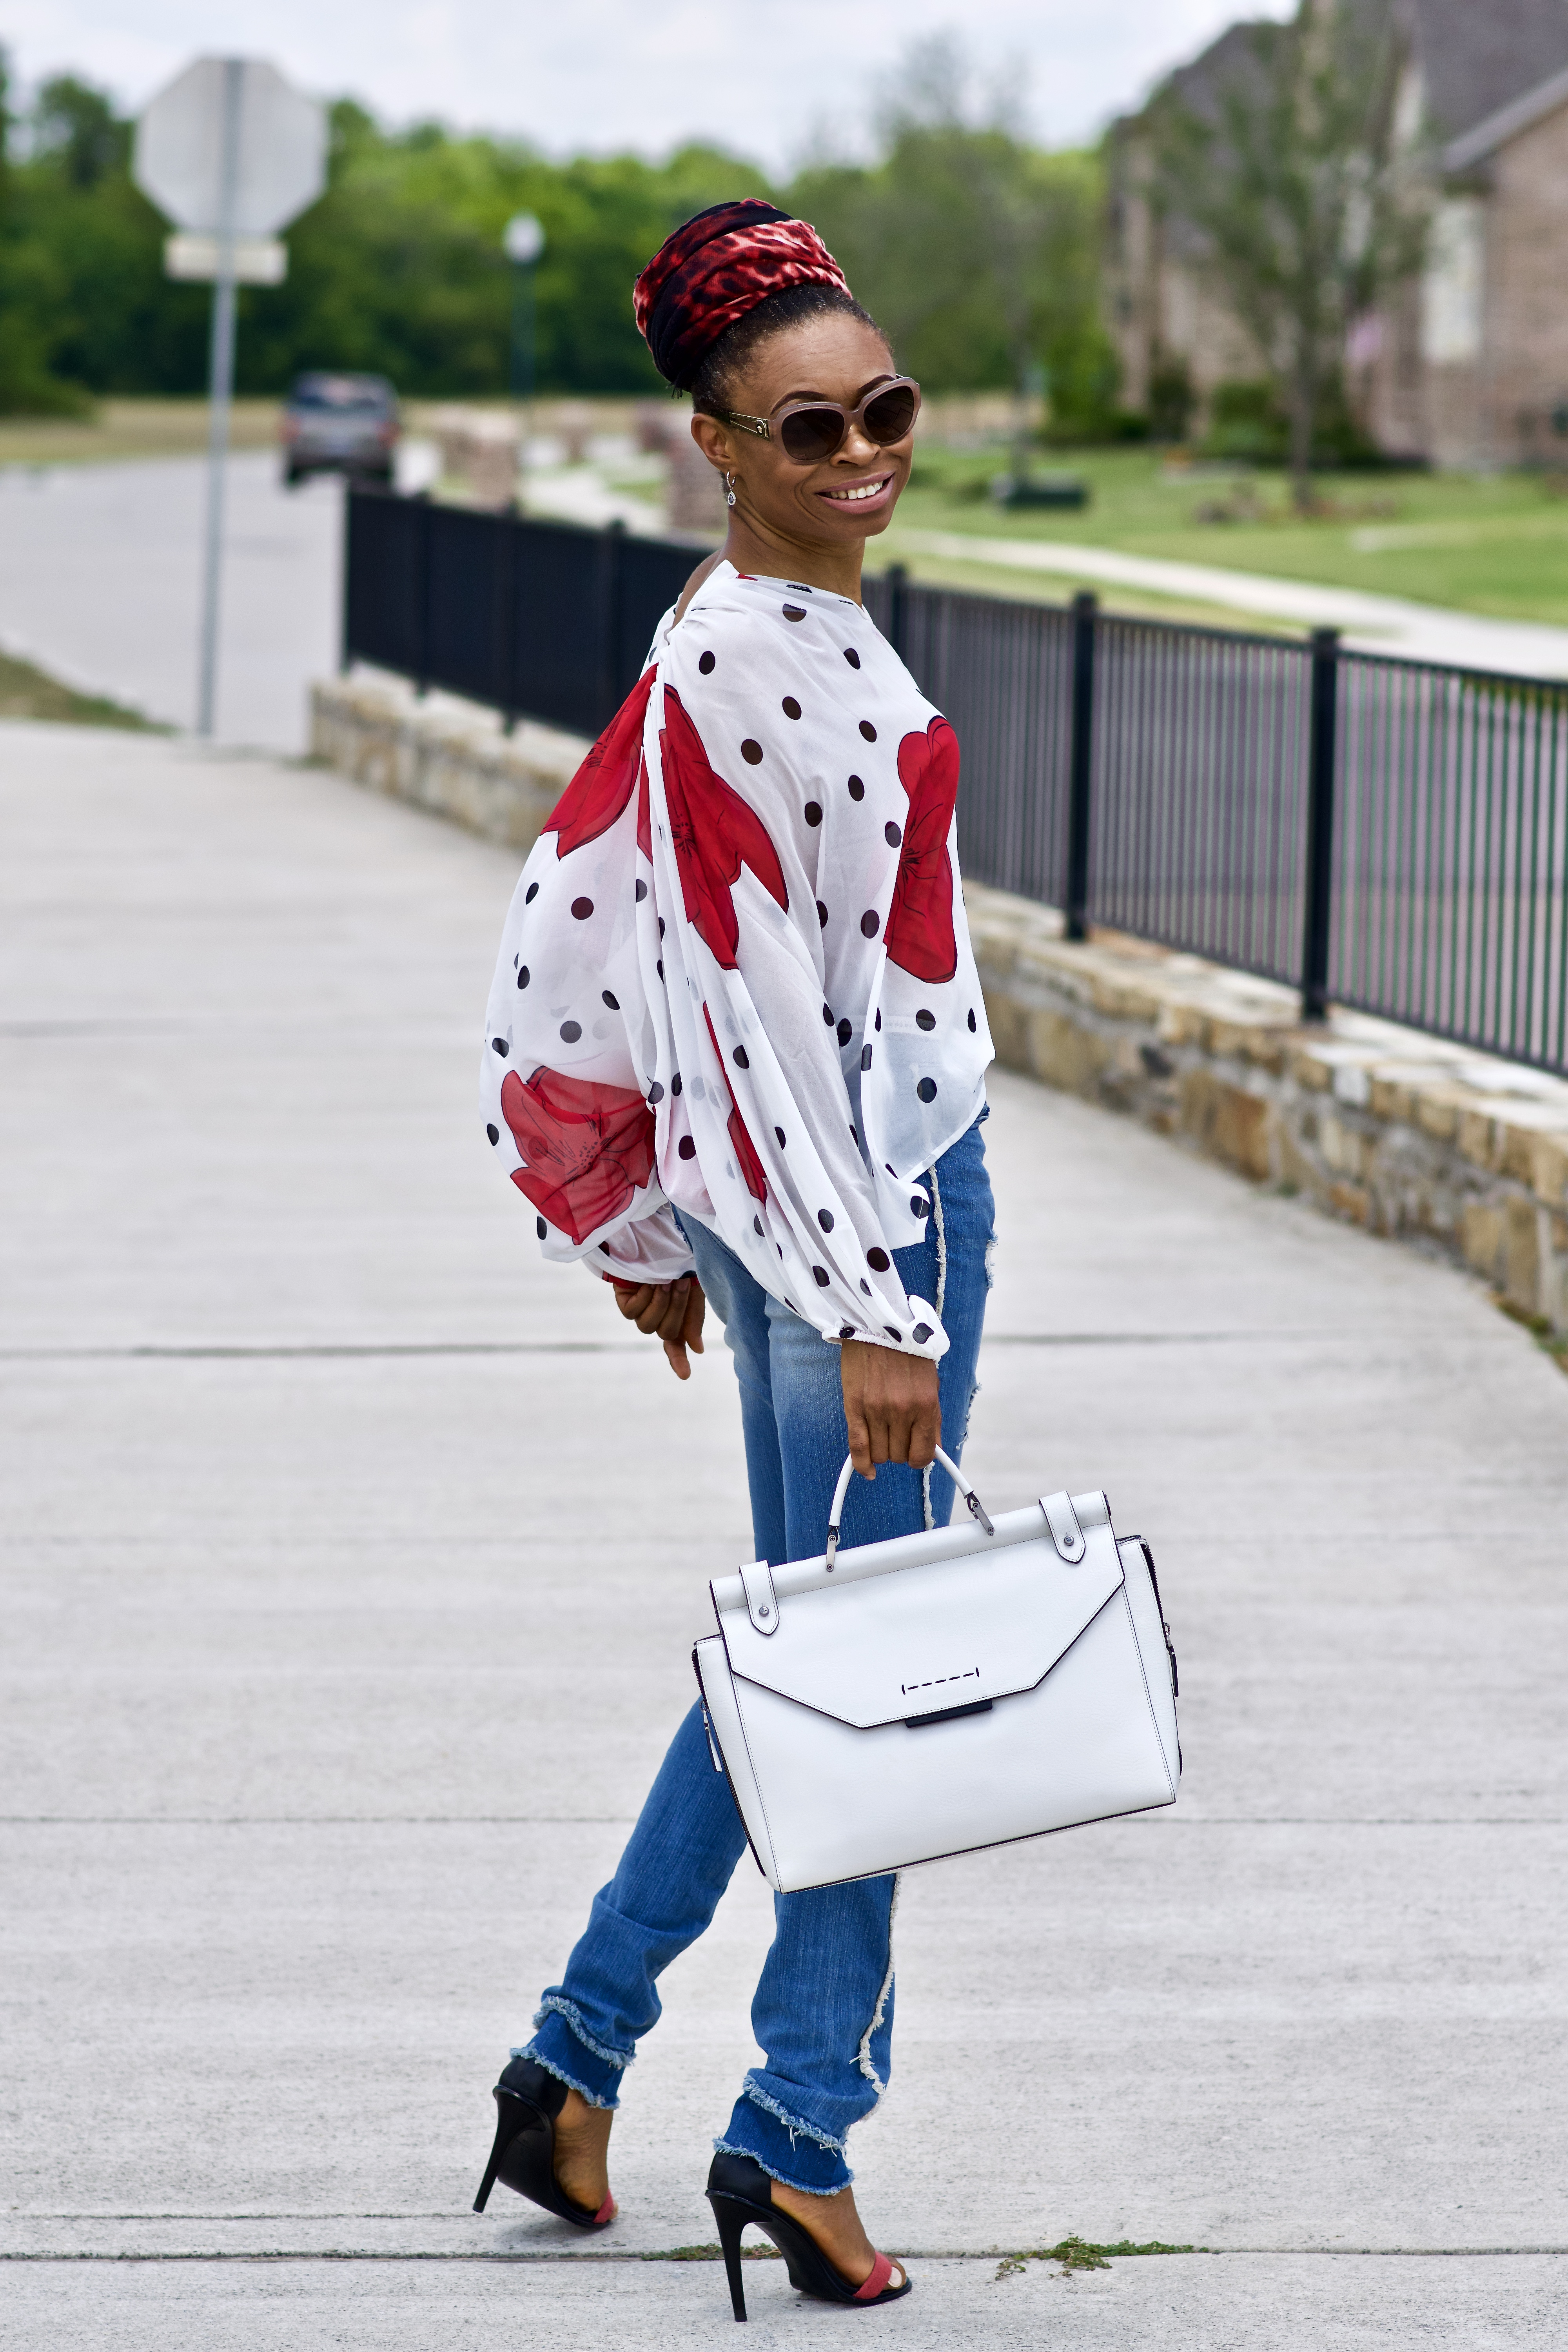 Petals and Polka dots blouson blouse + Side seam jeans